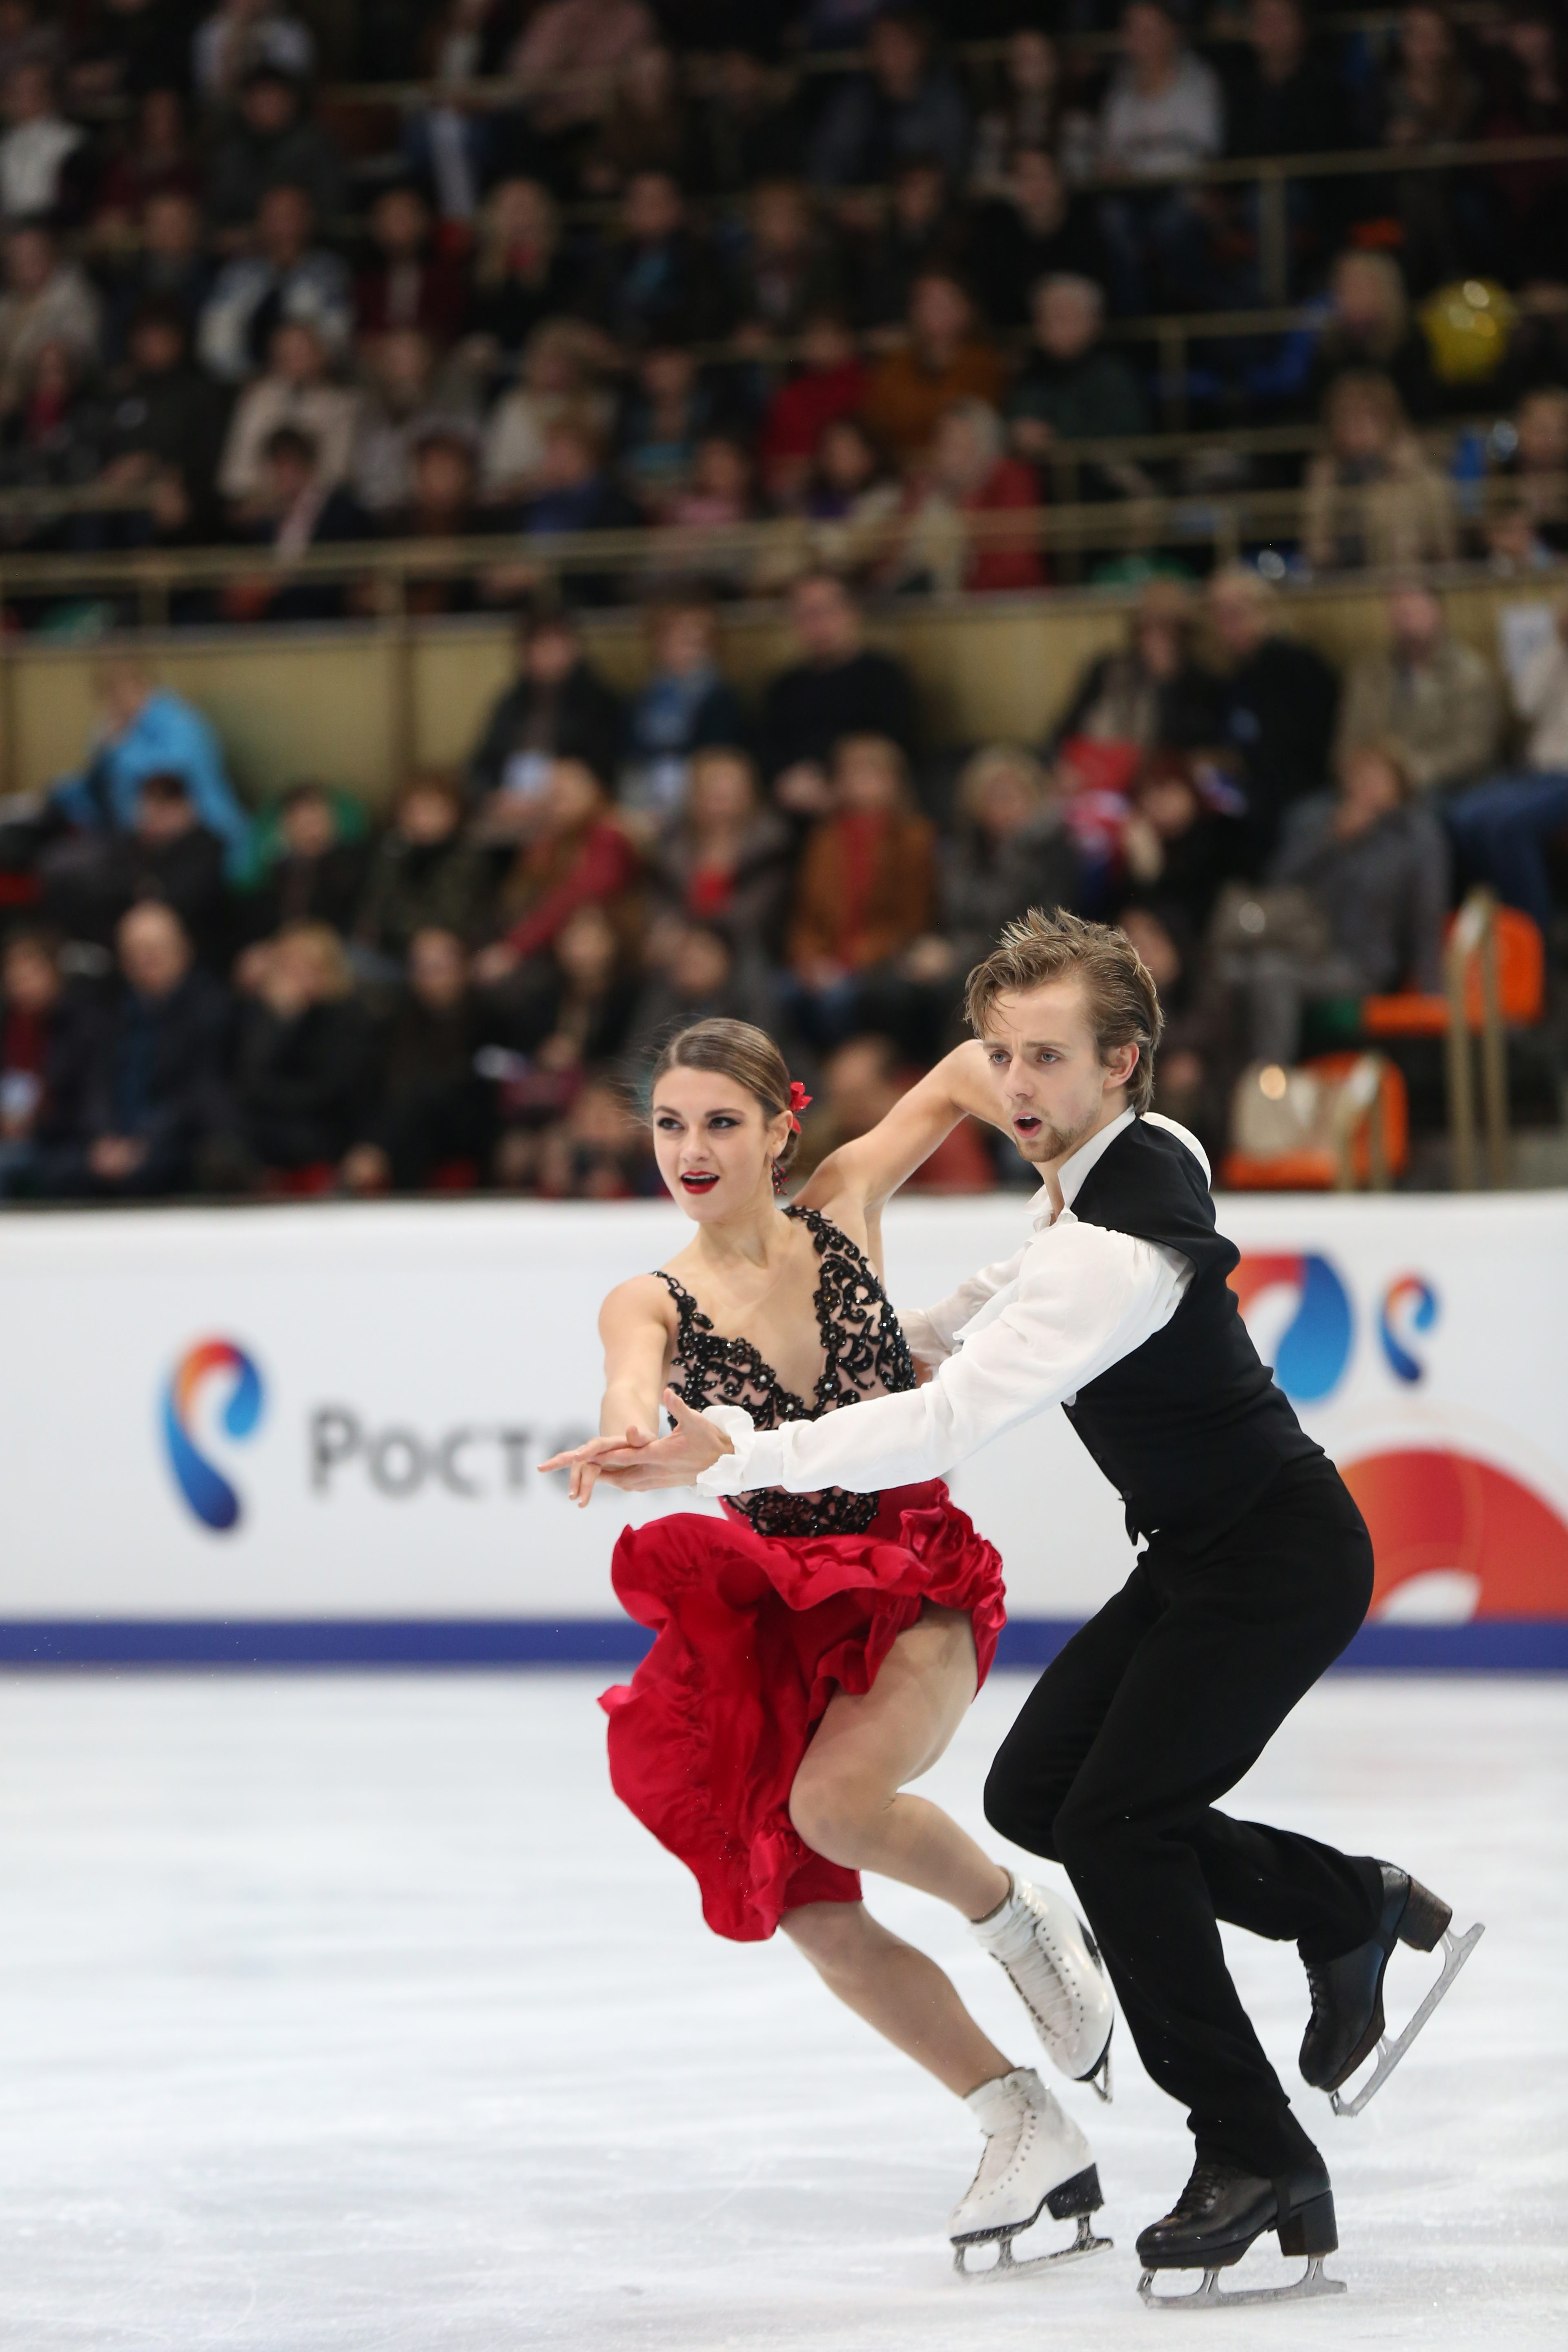 Kaitlin Hawayek and Jean-Luc Baker are competing in the televised U.S. Figure Skating  Championships. (Robin Ritoss/Special to The News)